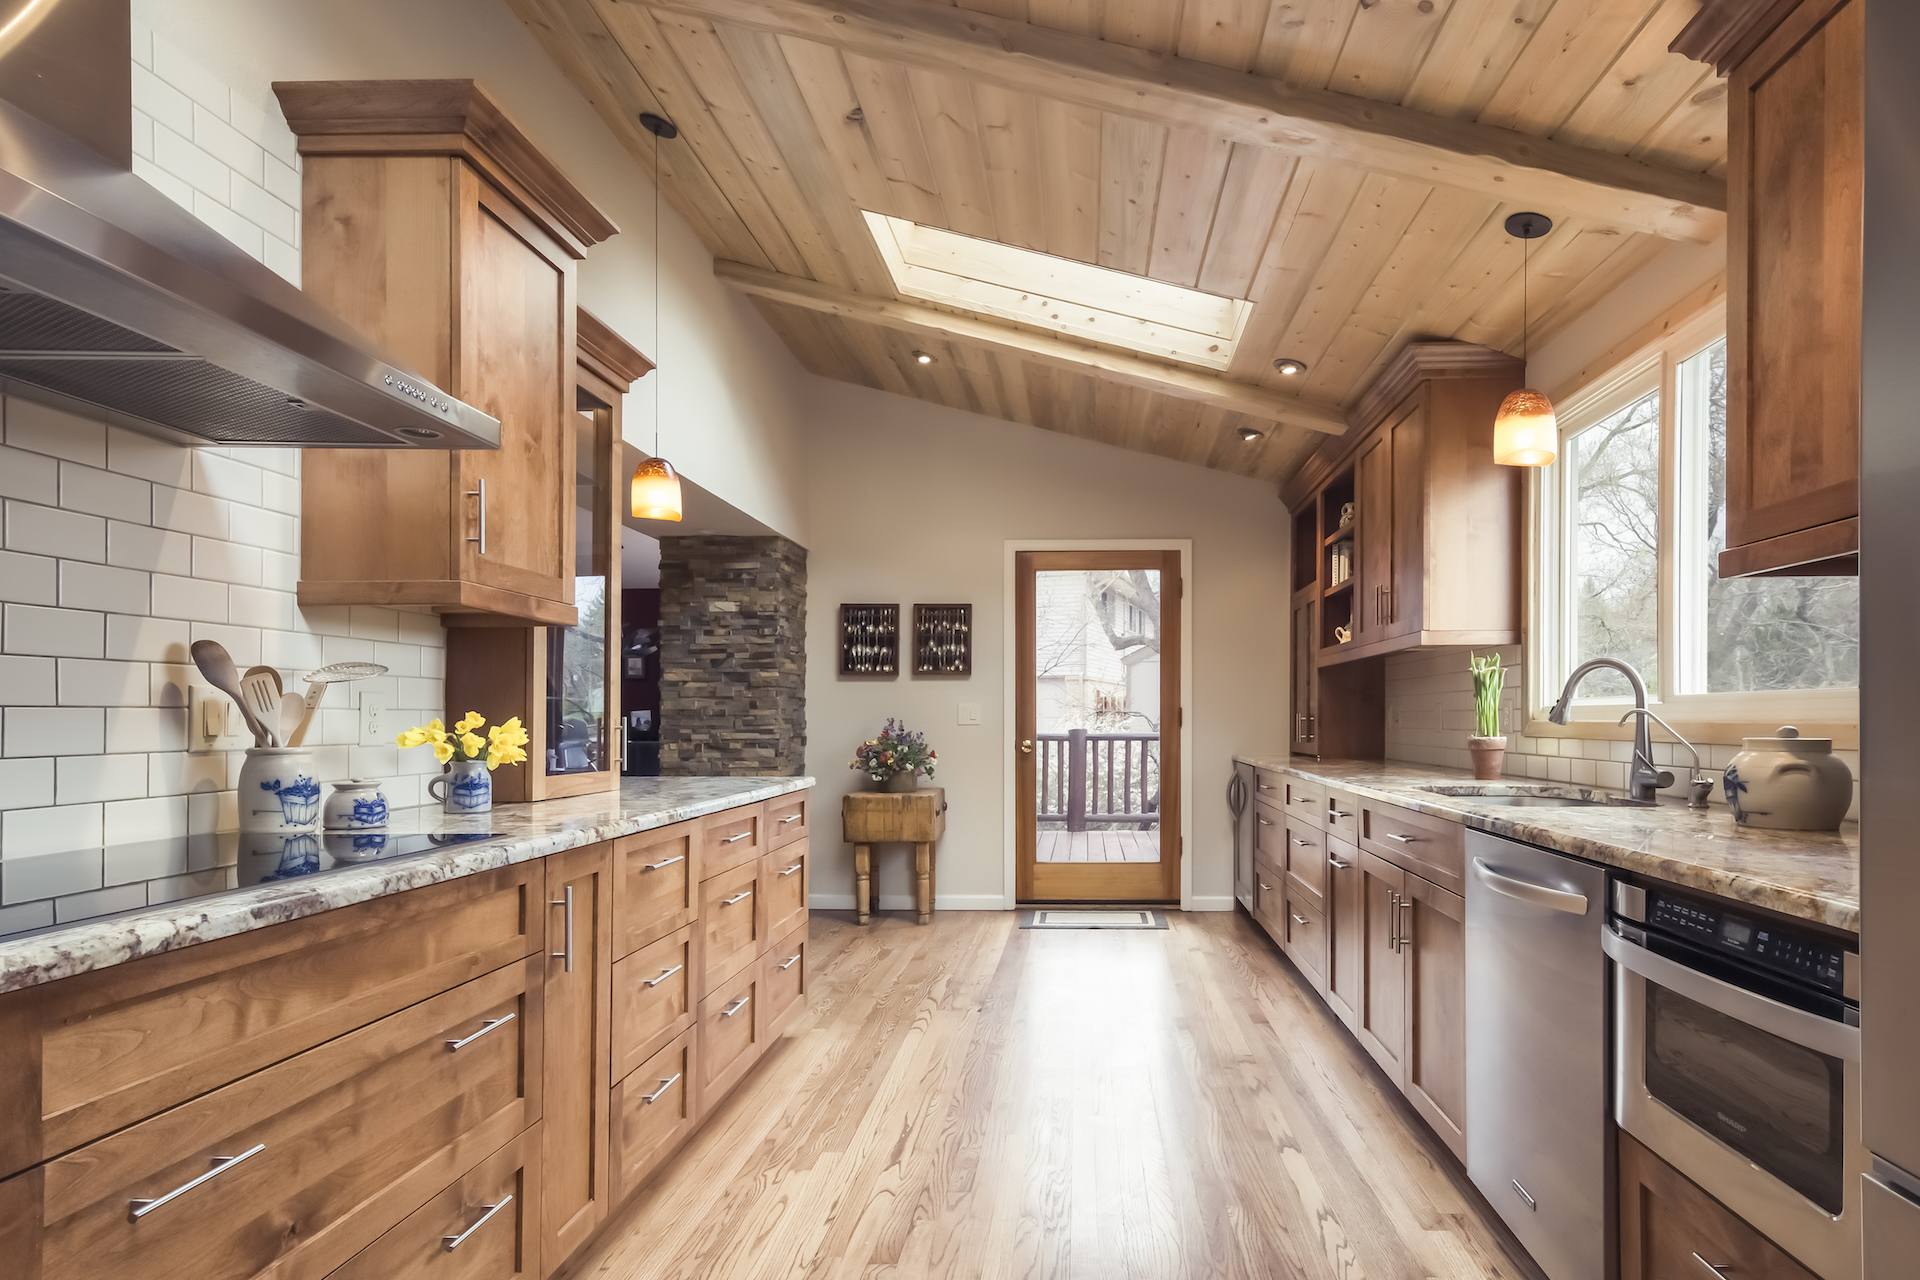 We exposed the shed roof on this galley kitchen and highlighted it with beetle kill pine planks.